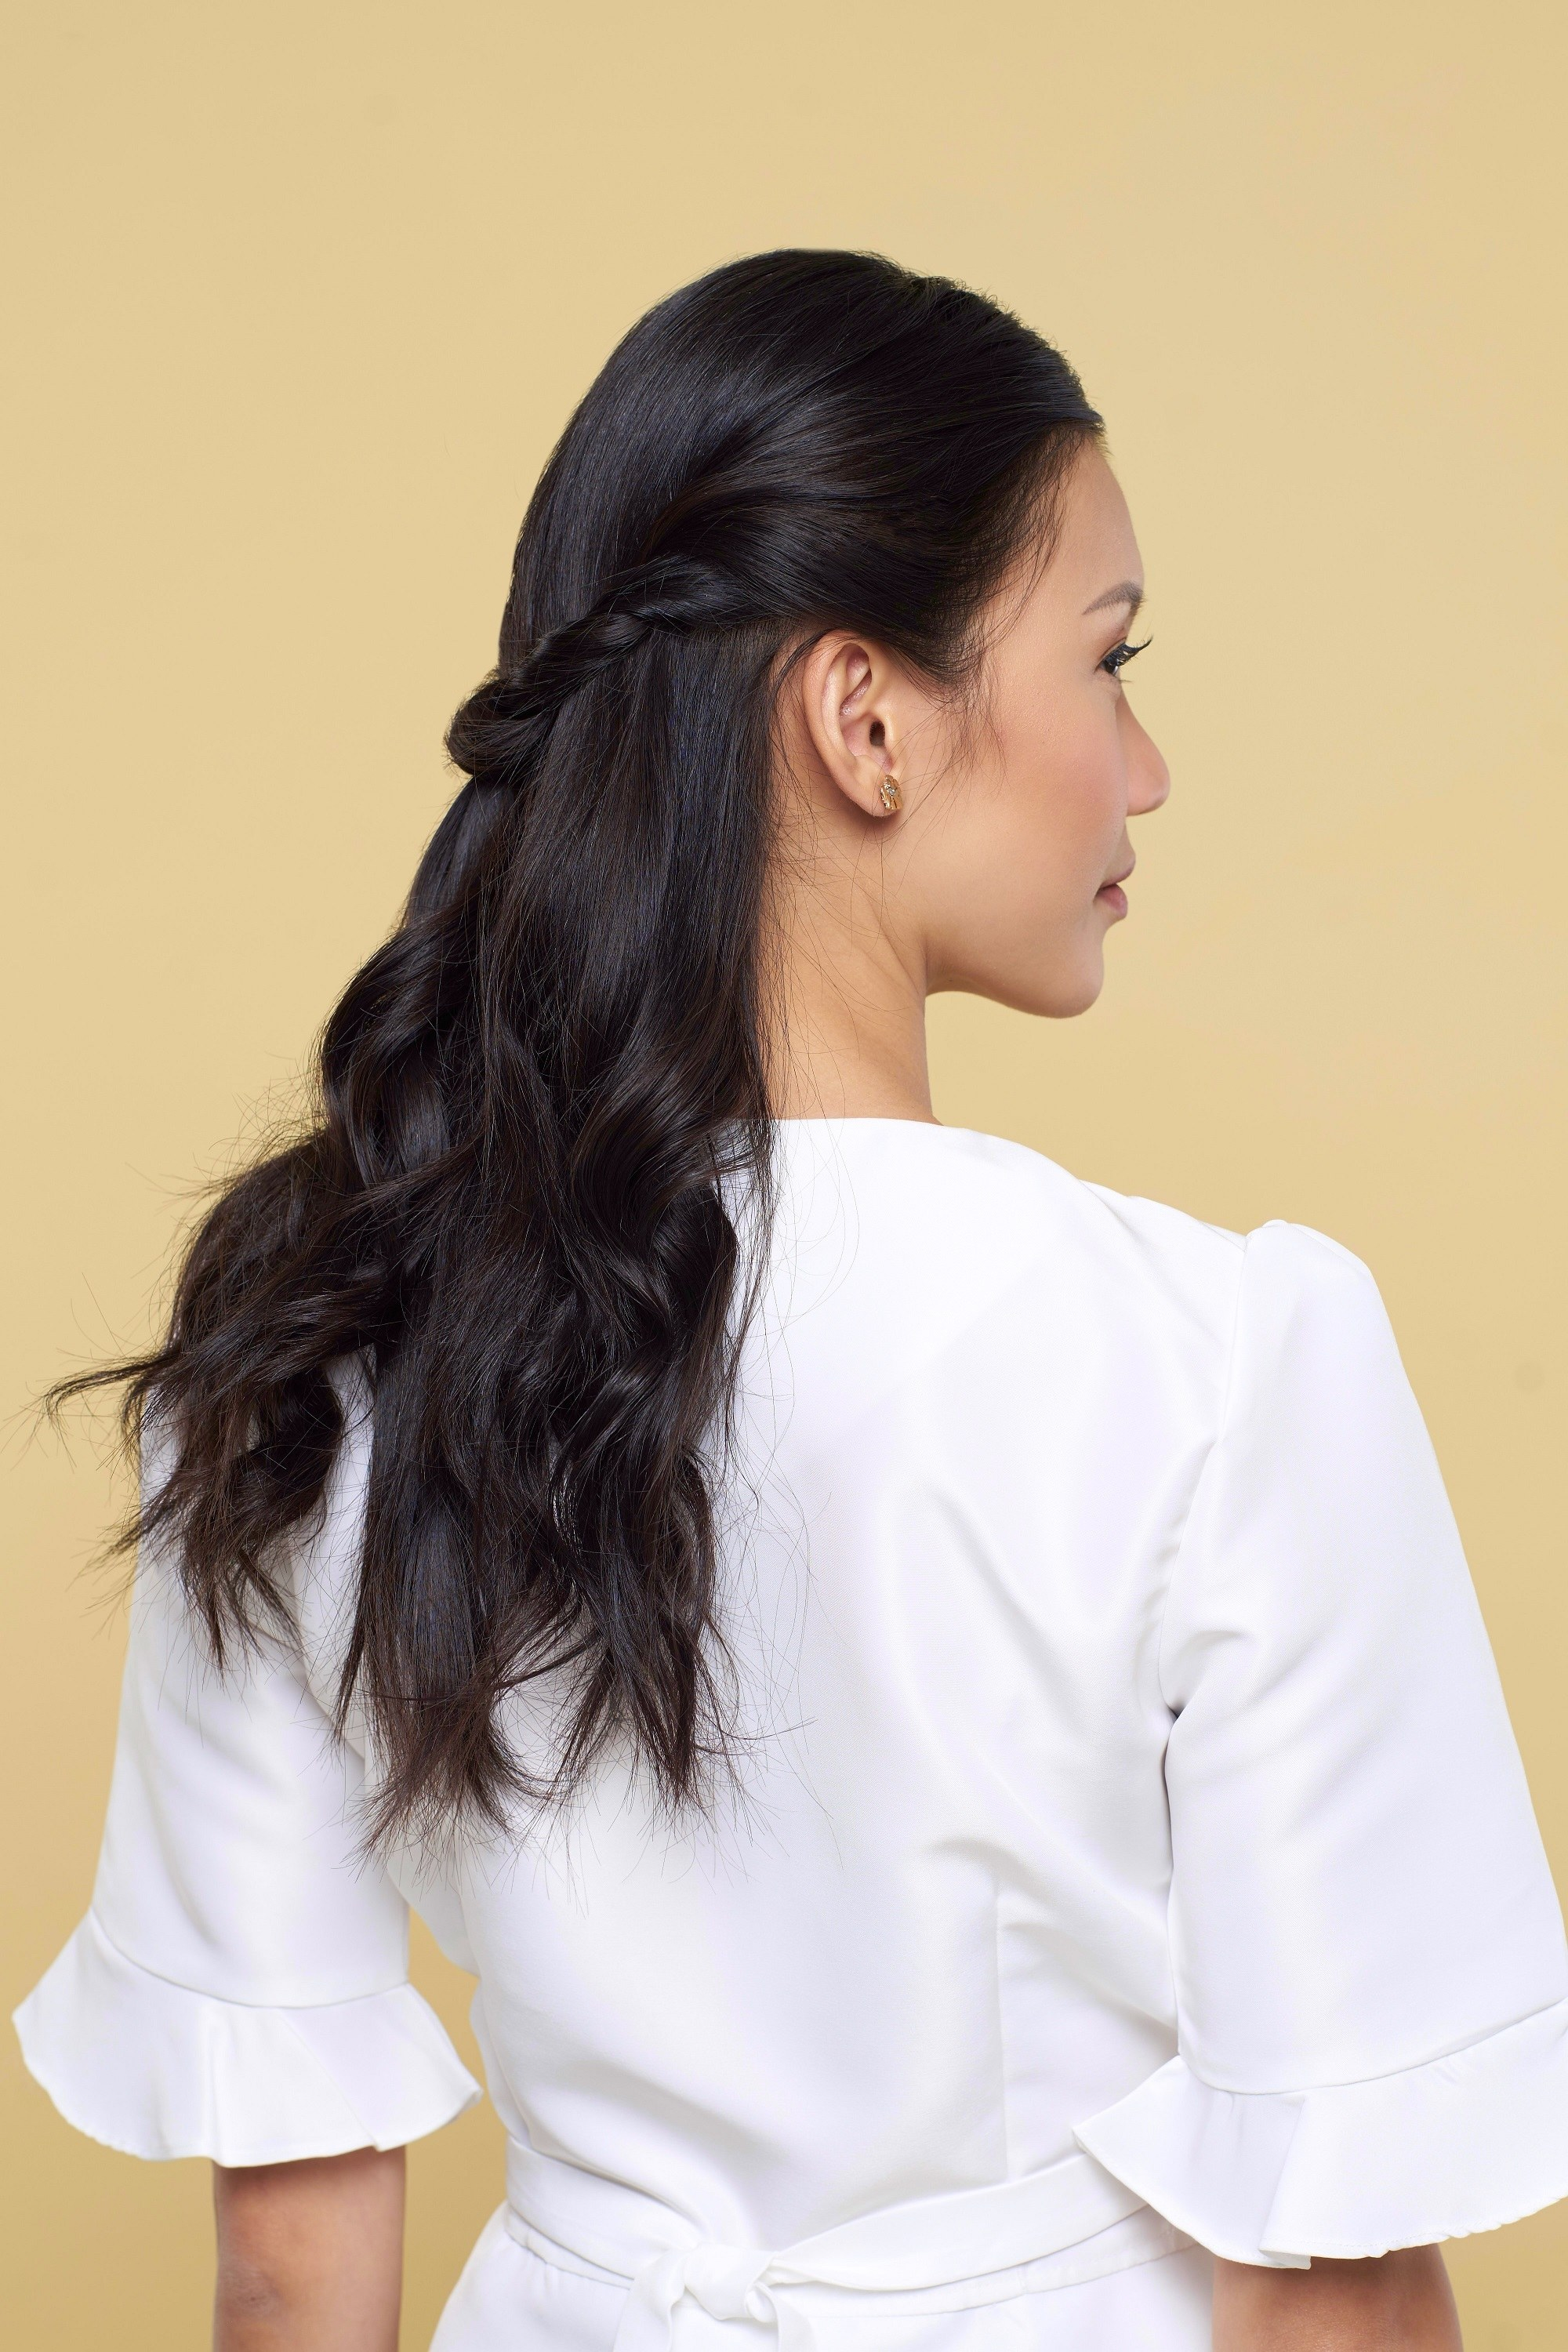 Valentine hairstyles: Back shot of an Asian woman with long black hair in half updo wearing a white blouse